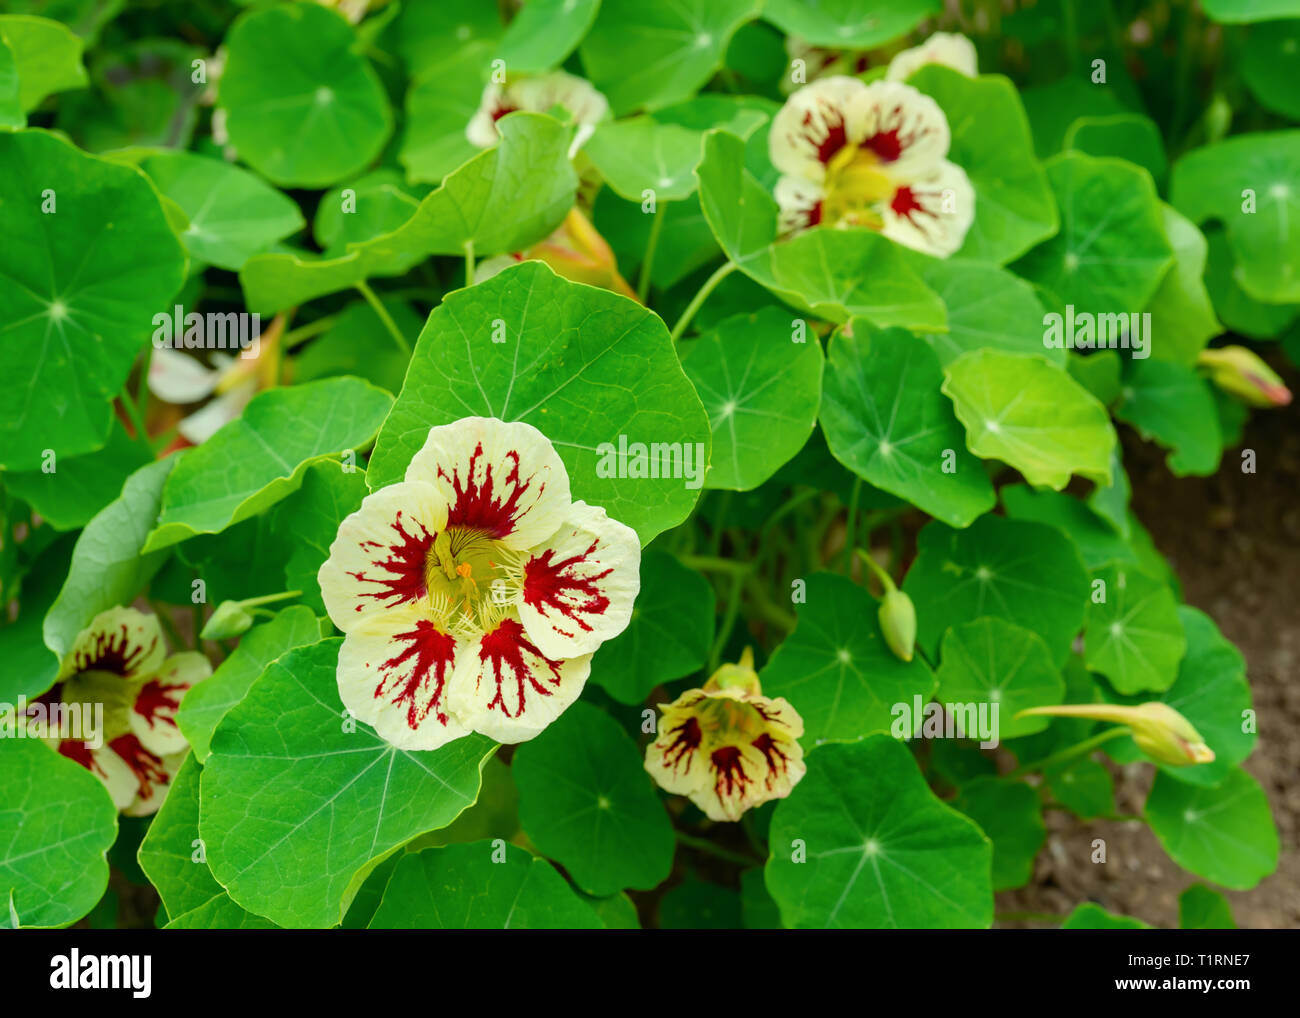 Nasturtium plants in the summer garden. Stock Photo